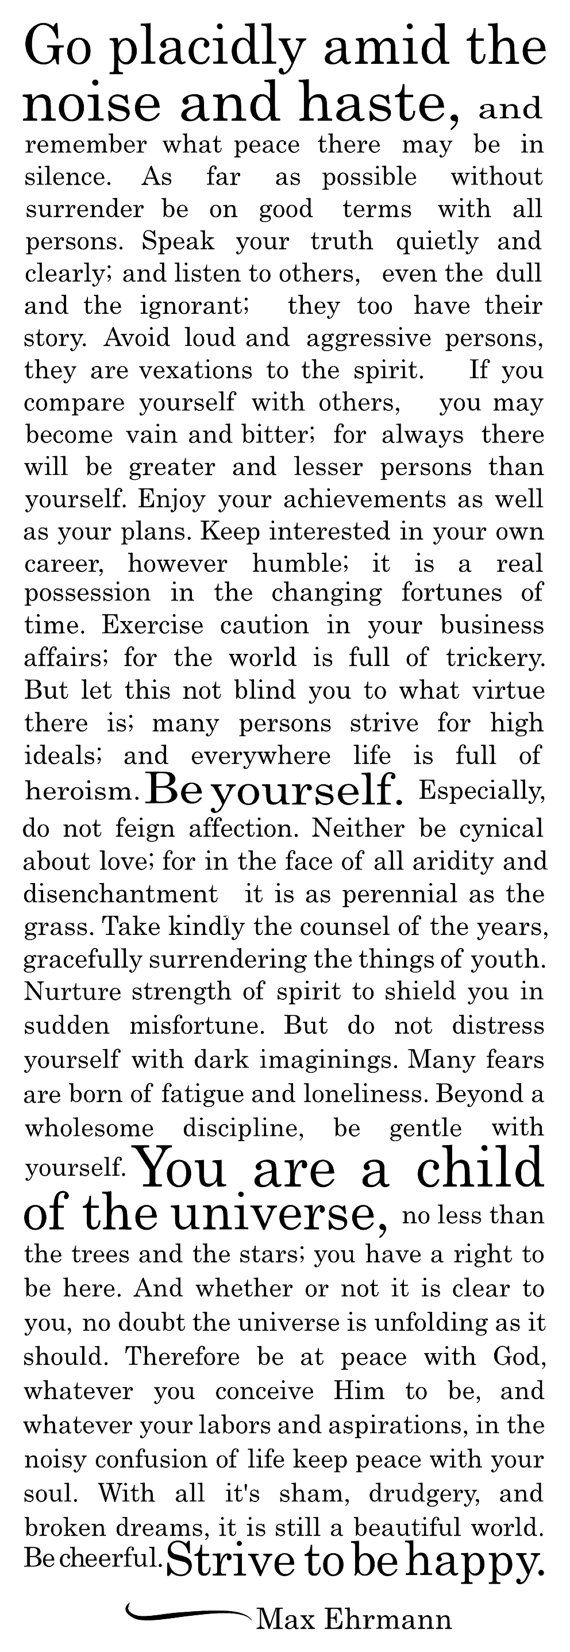 Desiderata by Max Ehrmann (September 26, 1872 - September 9, 1945) was an attorney and businessman from Terre Haute, Indiana. He worked in his family's meatpacking business and in the overalls manufacturing industry before leaving at age 40 to write. He penned Desiderata at age 54, and it did not achieve fame until after his death